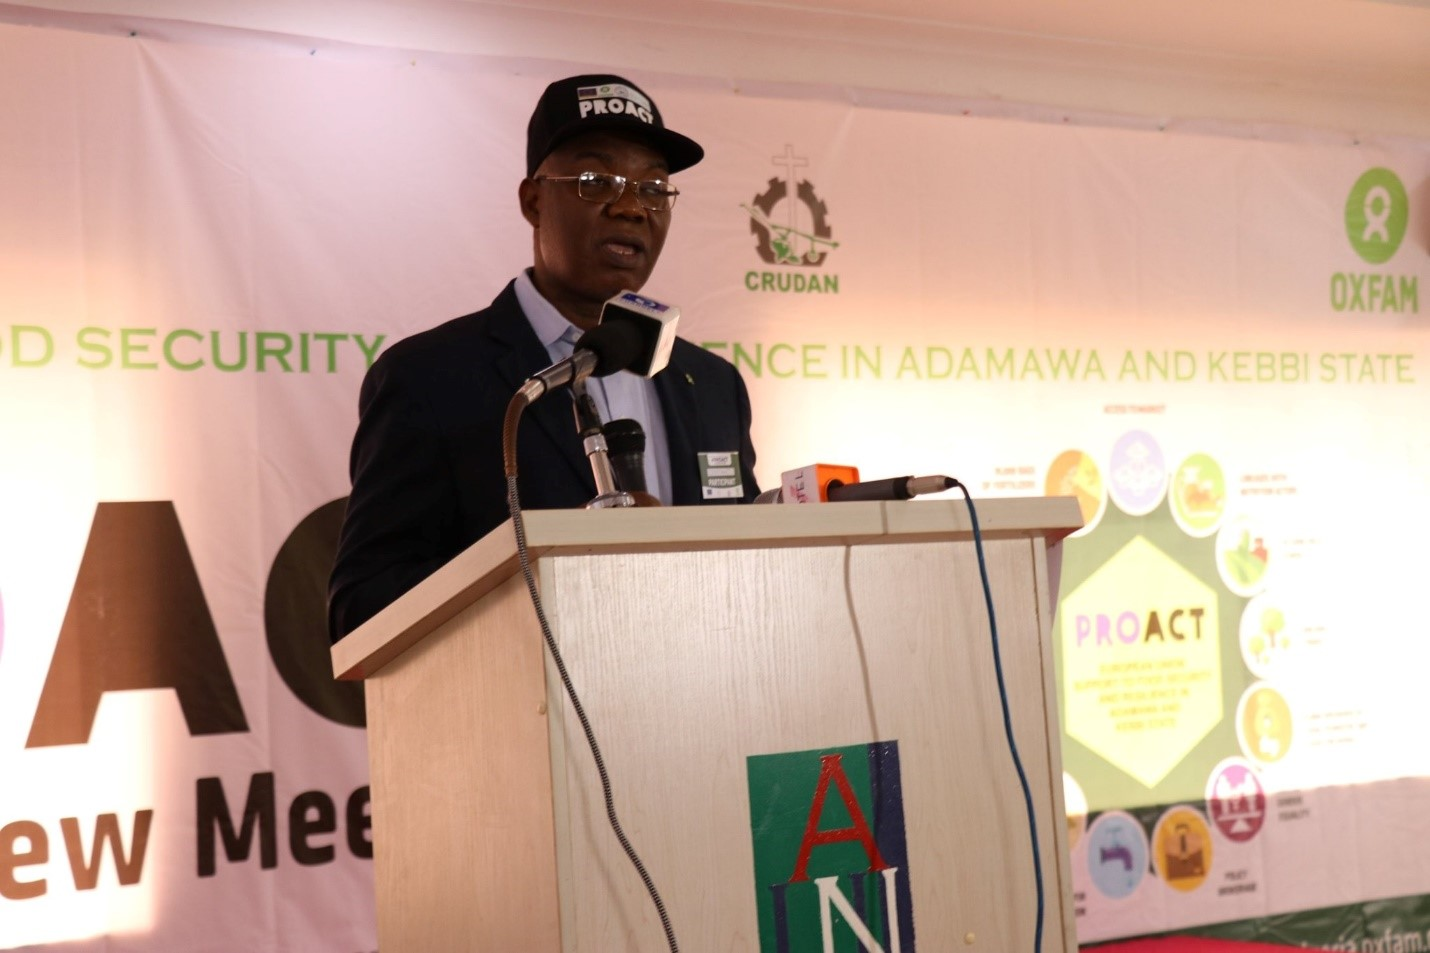 Constant Tchona, Interim Country Director, Oxfam in Nigeria delivers remarks at the event. Photo: Oxfam/James Bigila